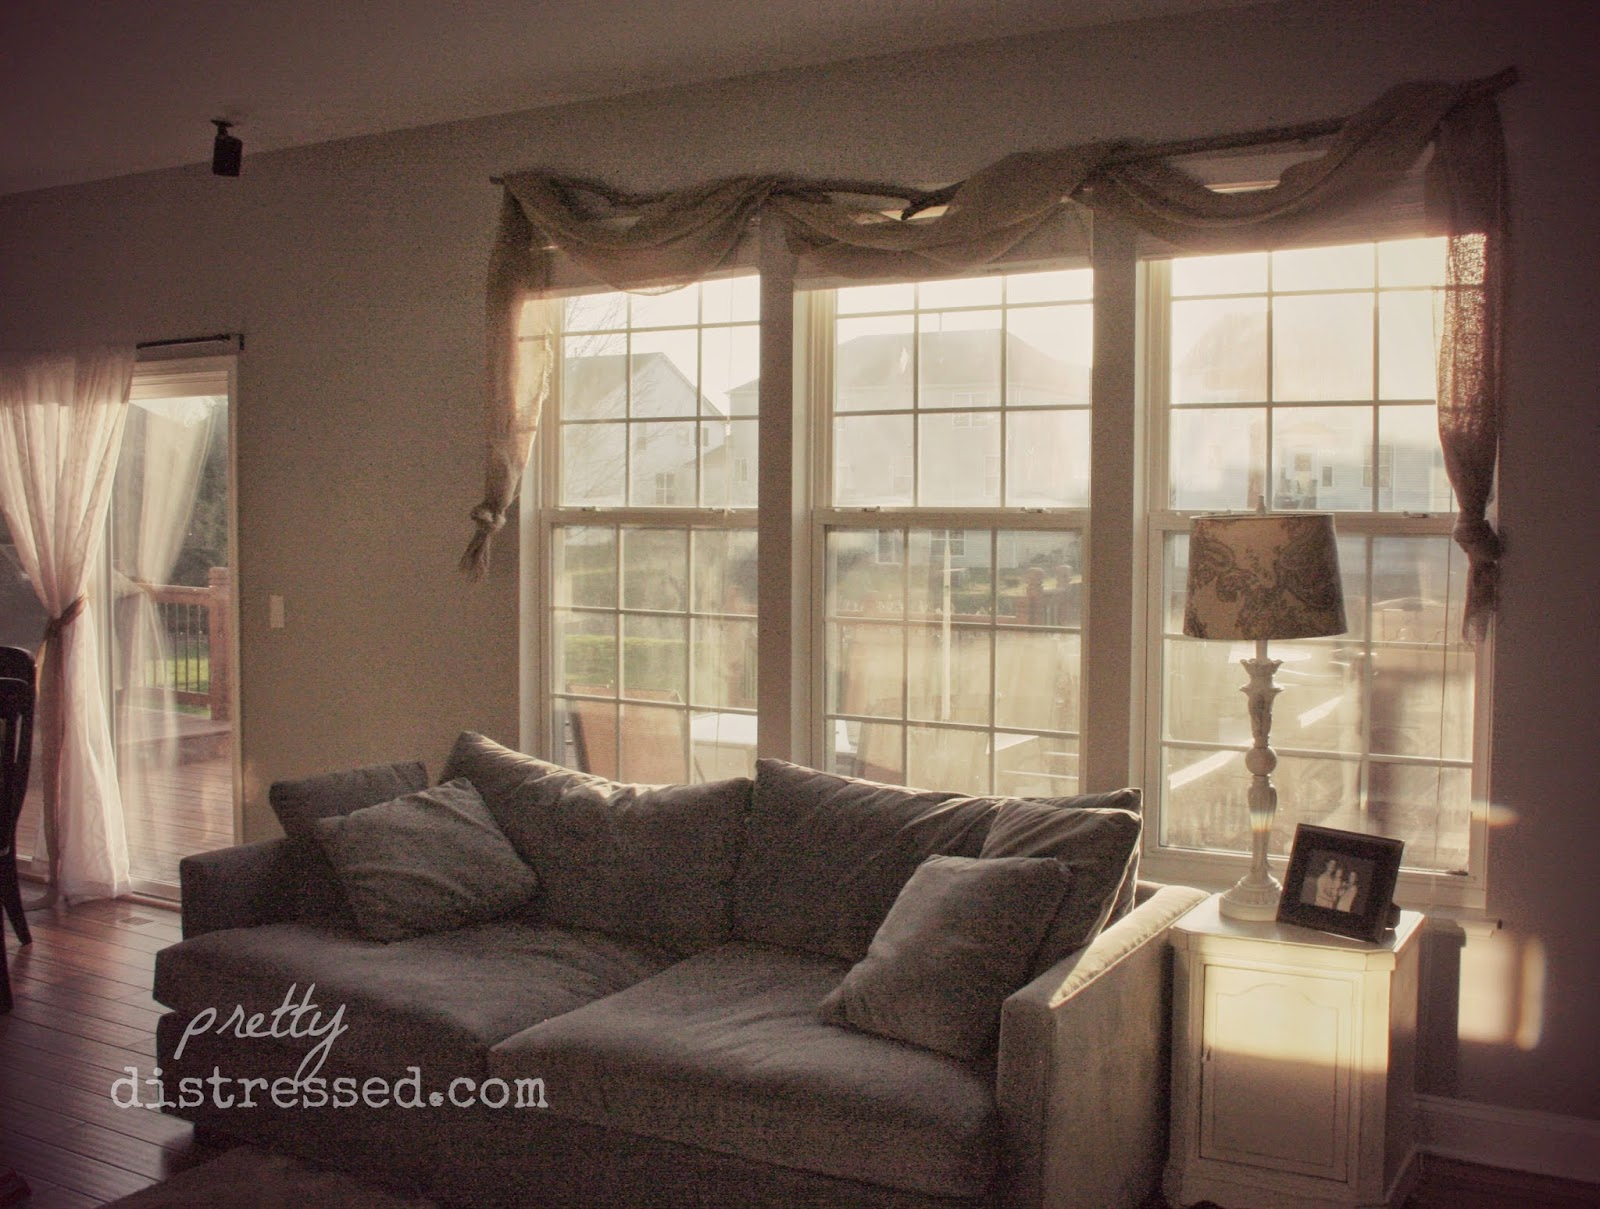 Pretty Distressed Pin Spired Diy Country Chic Window